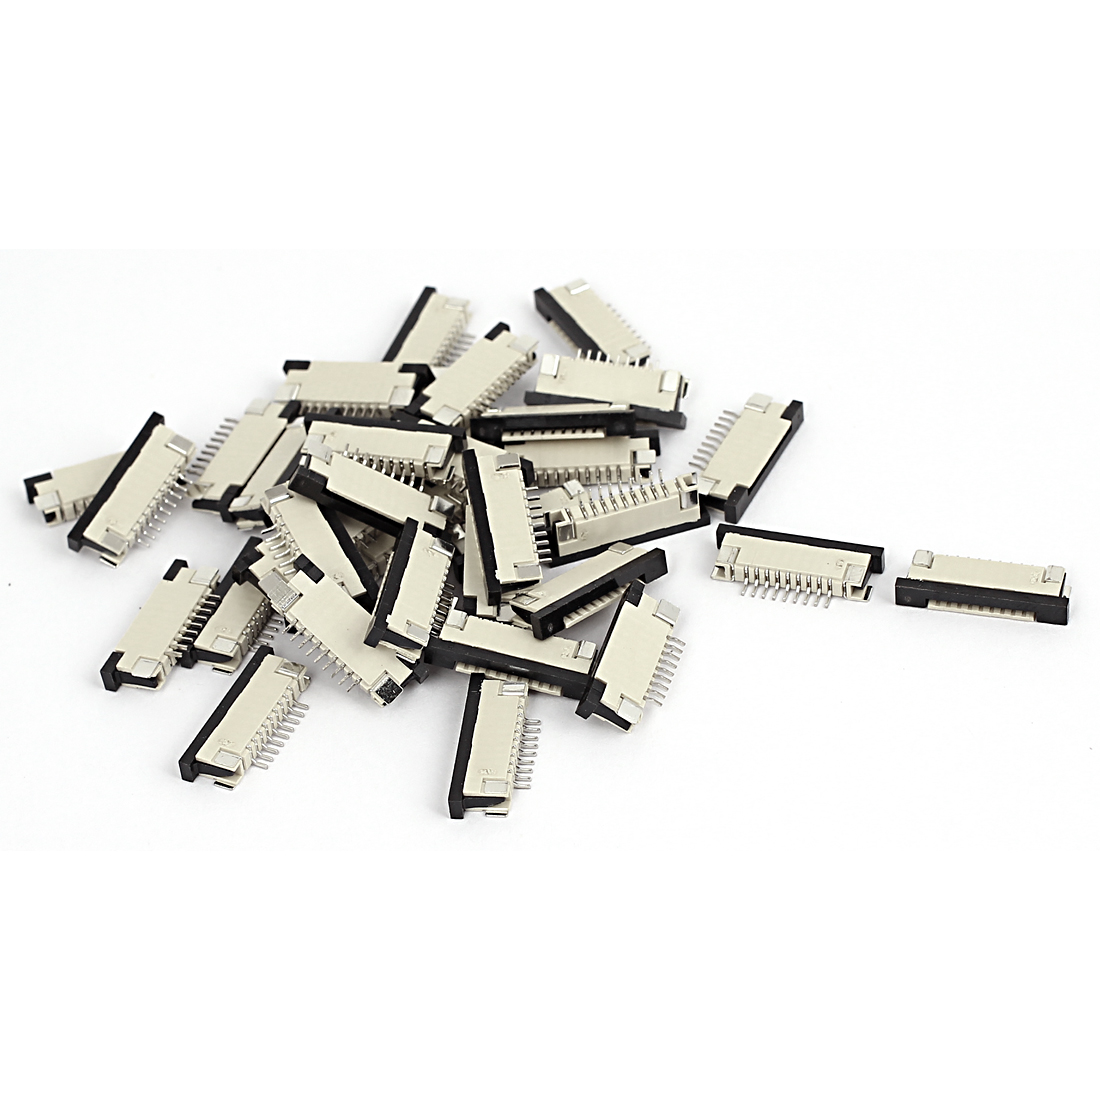 1.0mm Pitch 9 Pin FFC FPC Flexible Flat Cable Ribbon Cord Upper Connector Socket 36pcs